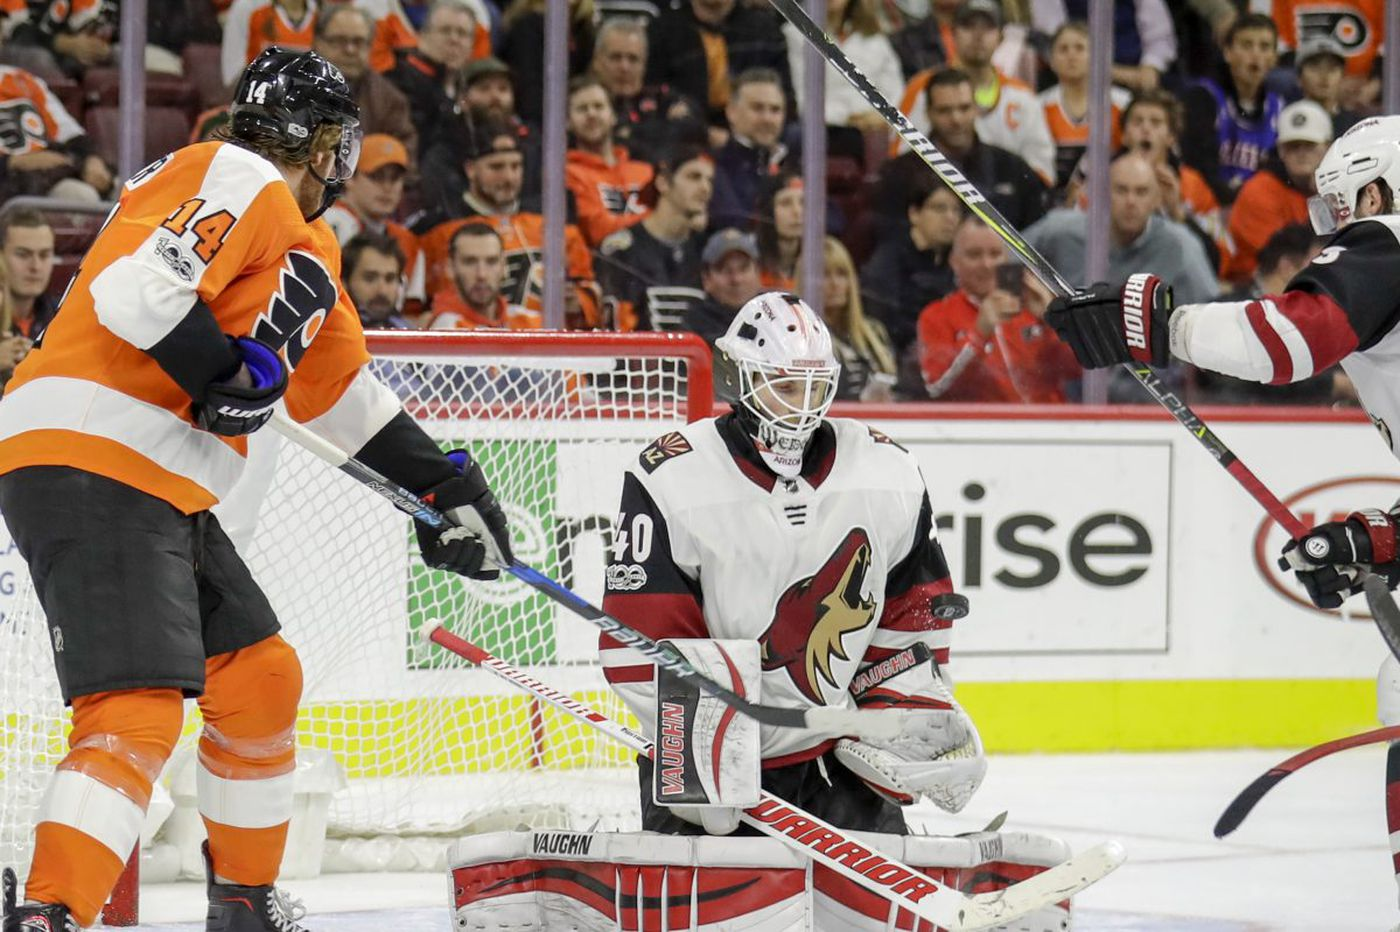 Flyers-Blackhawks preview: Meeting of struggling teams